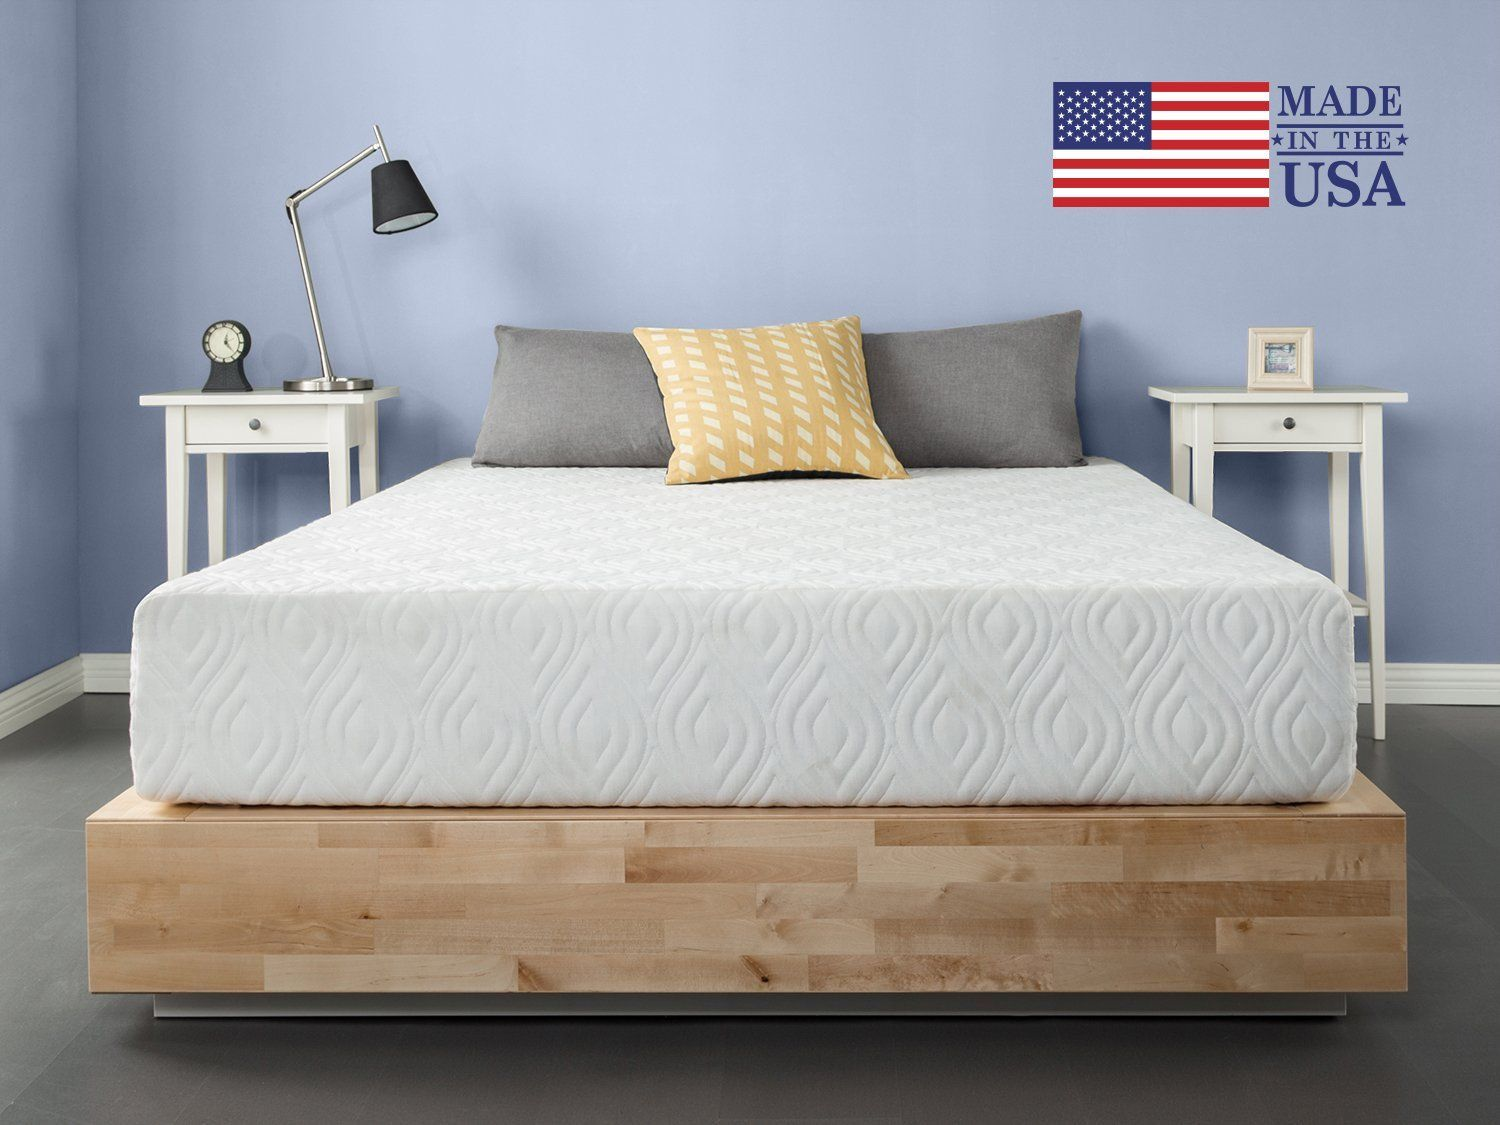 Zinus 10 Inch Gel Memory Foam Liberty Mattress Made In Usa Certipur Us Certified Queen Check Out This G Gel Memory Foam Mattress Zinus Gel Memory Foam